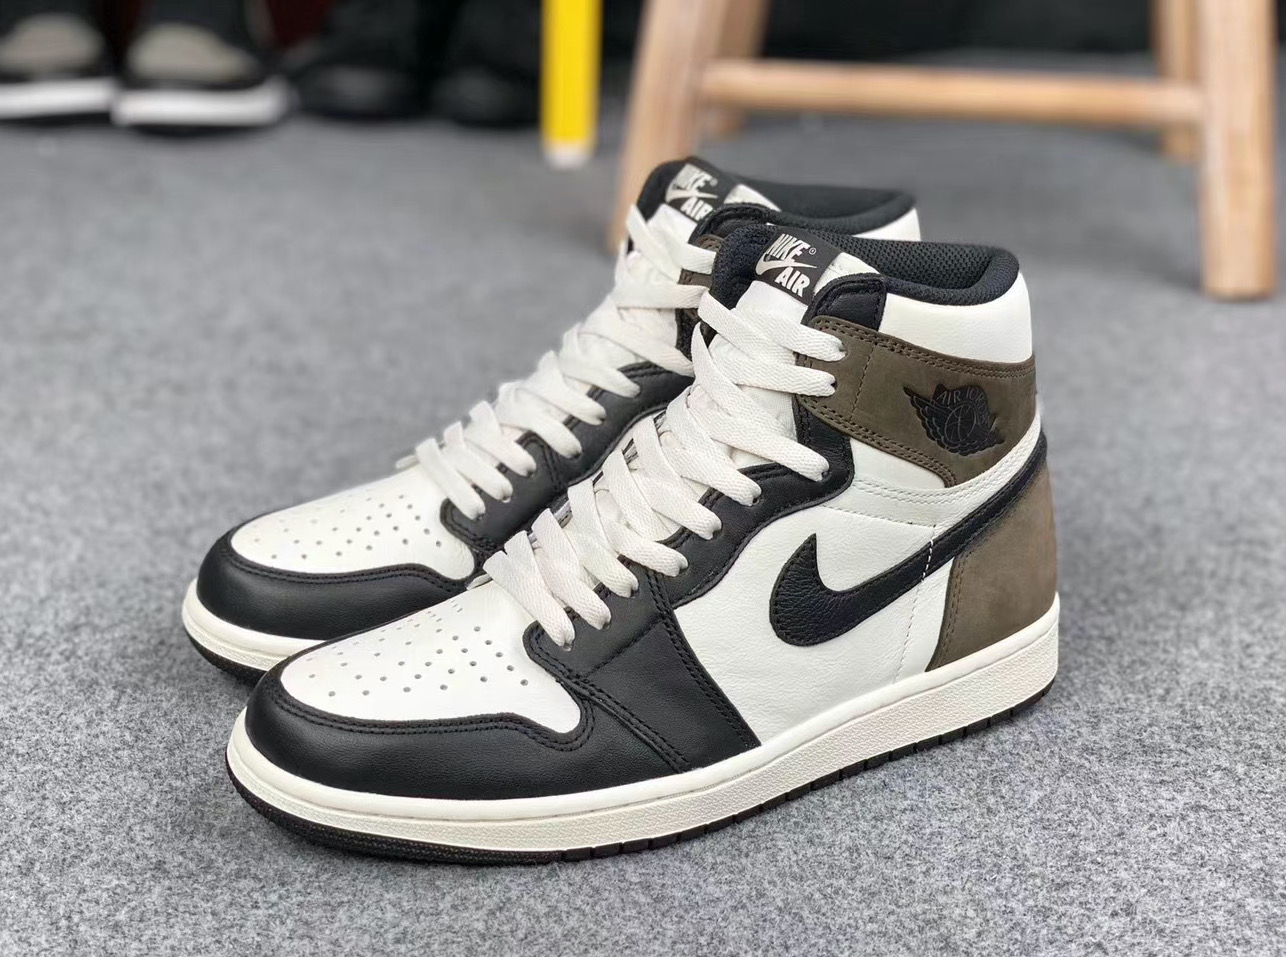 Release Date: Air Jordan 1 High 'Dark Mocha'